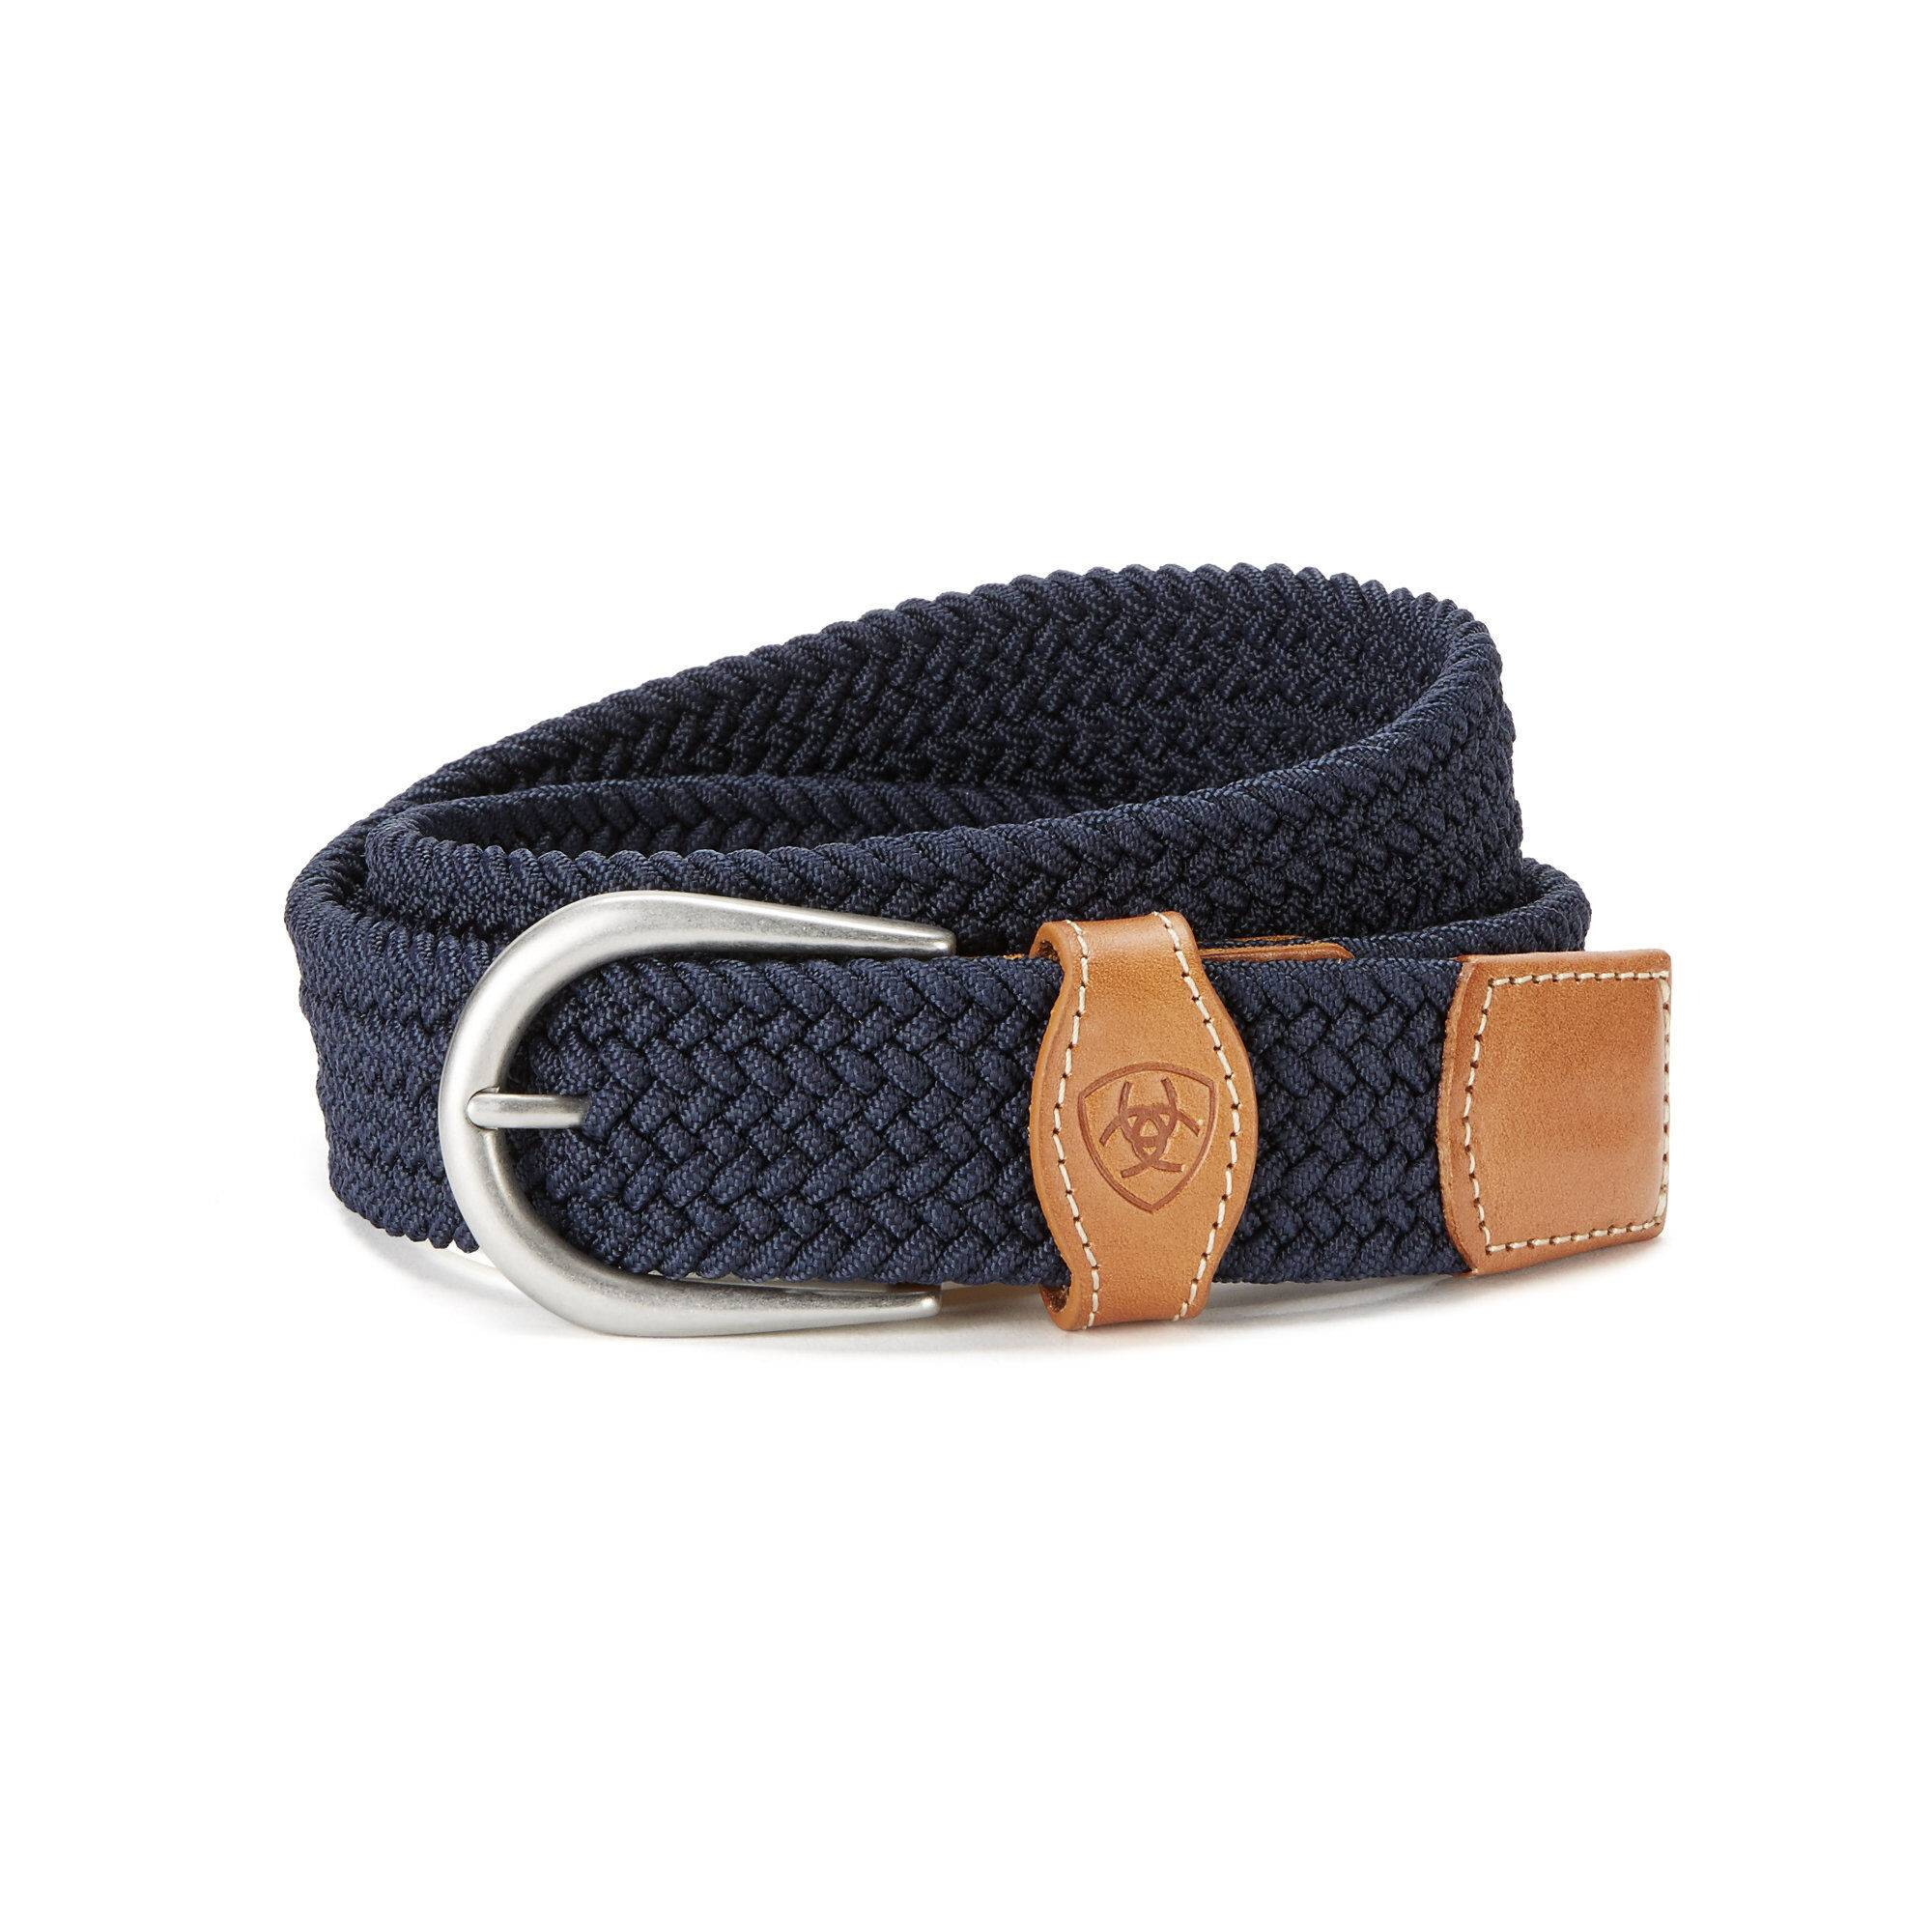 Ariat One Rail Woven Belt in Navy Blue Leather, Medium/Large by Ariat